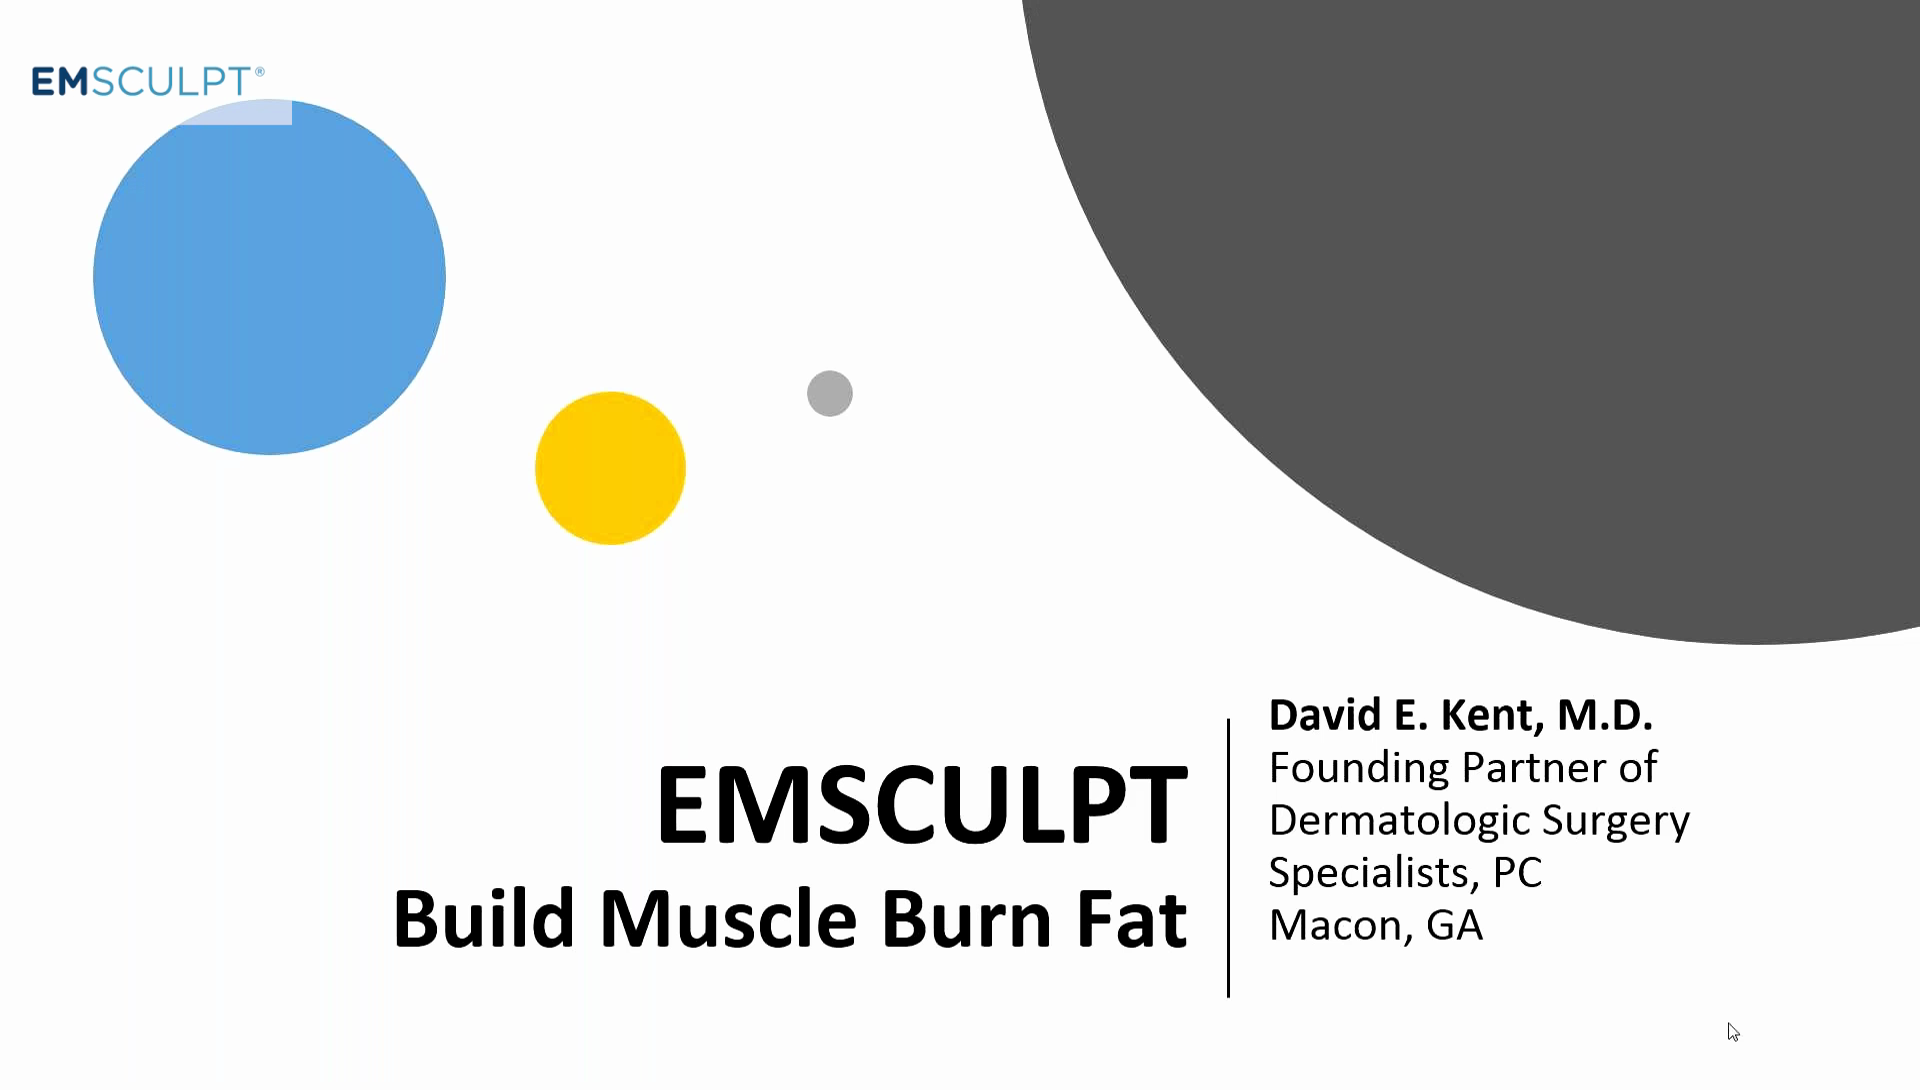 Emsculpt_VIDEO_Webinar-david-kent-md_ENUS100